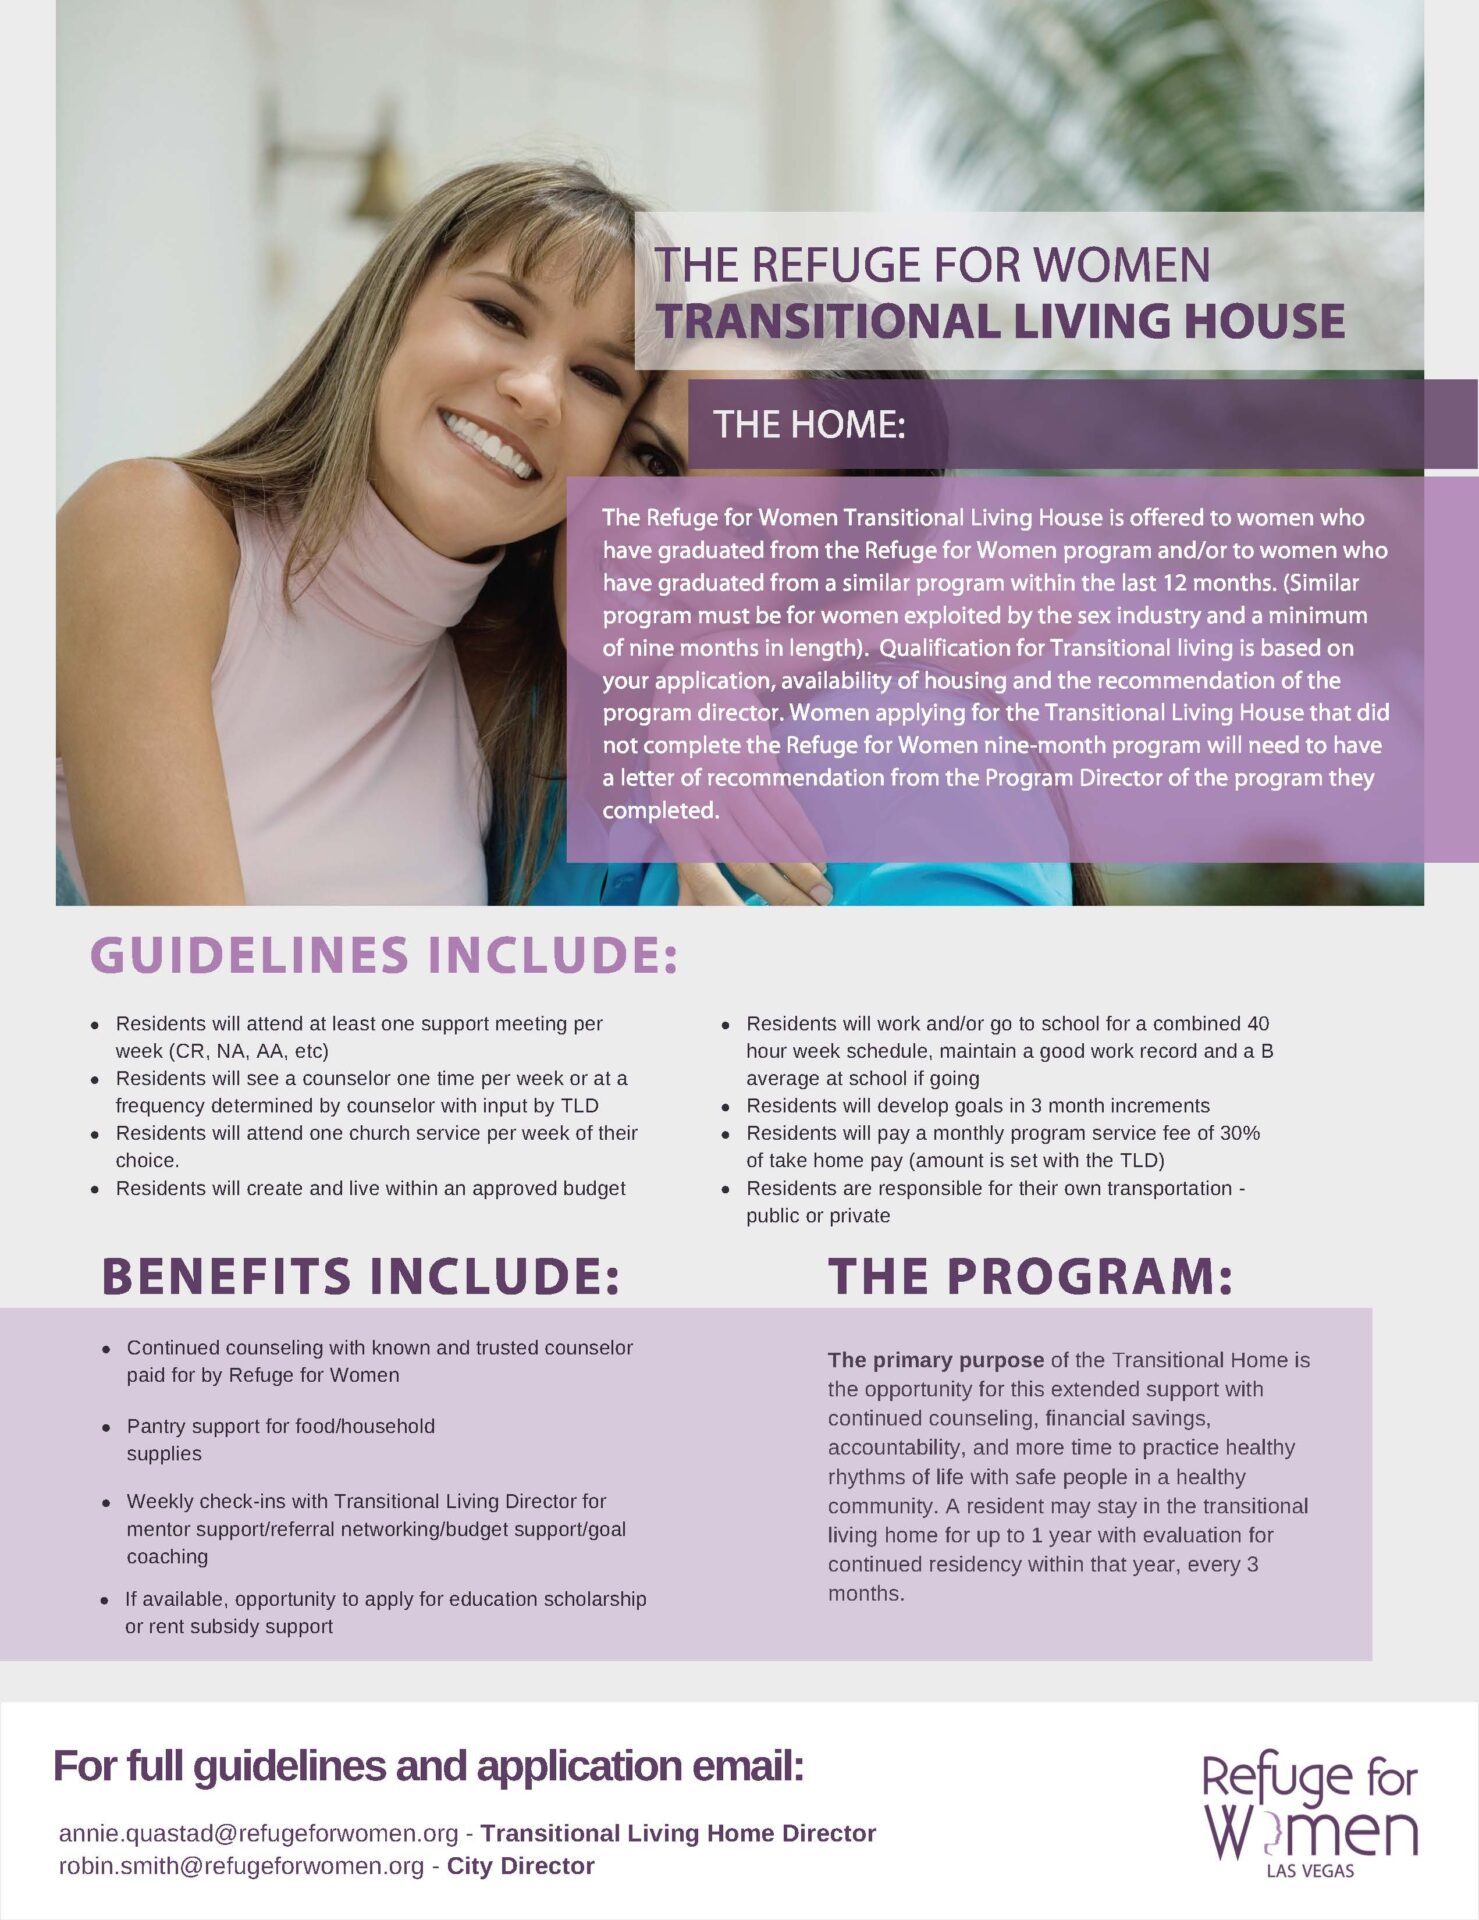 Refuge for women flyer